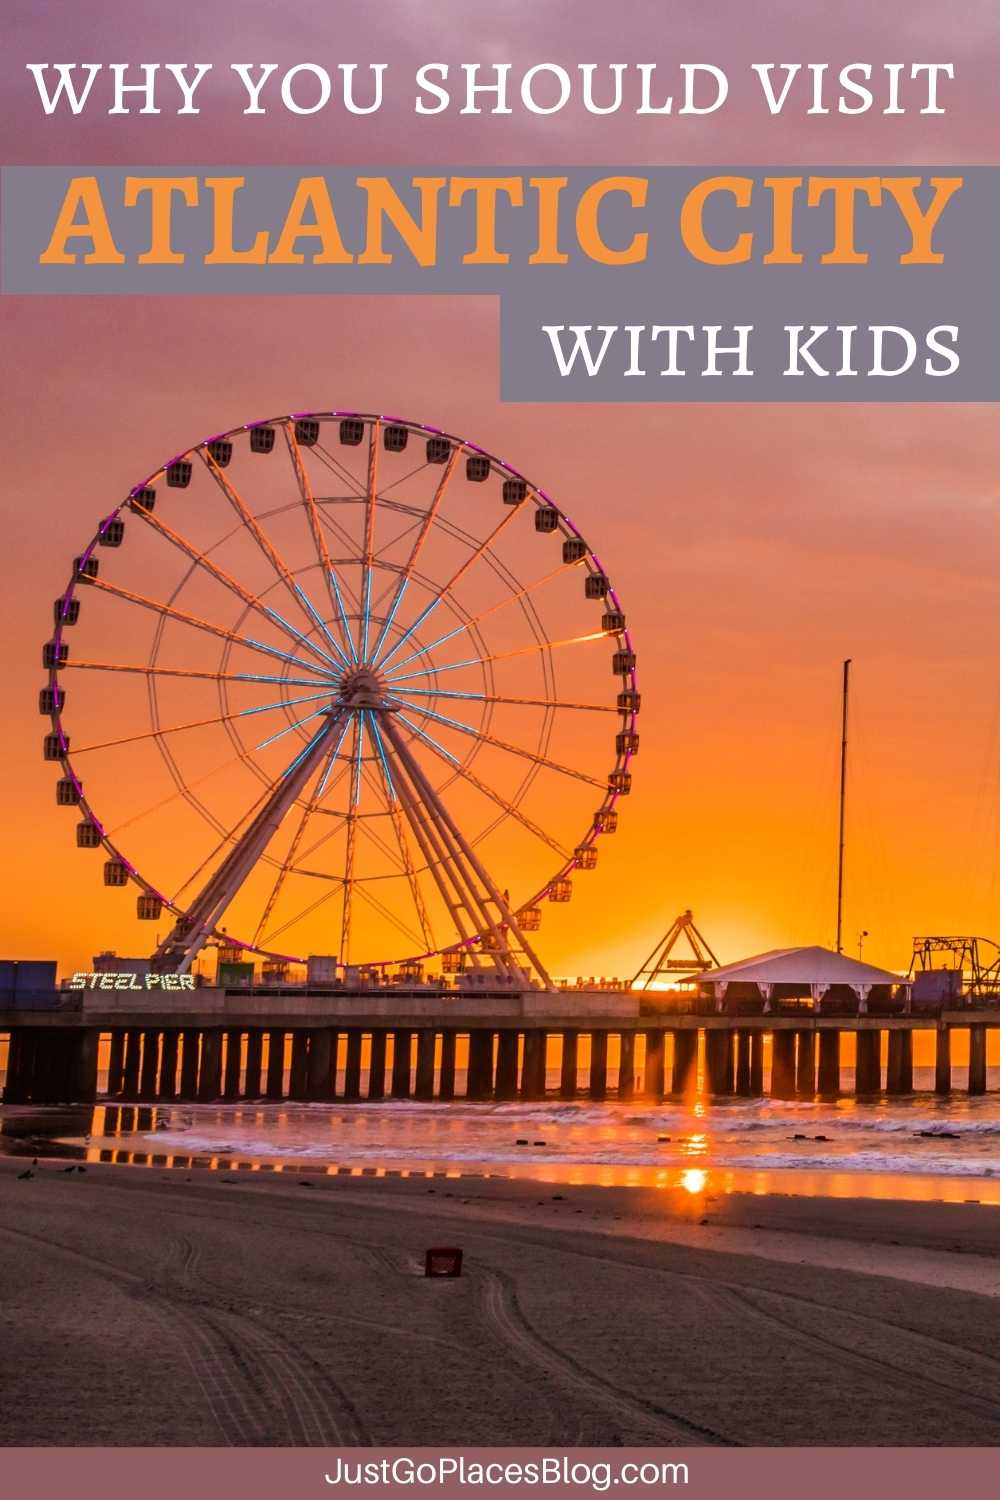 """Pinterest Image of Steel Pier in Atlantic City New Jersey with the text: """"Why You Should Visit Atlantic City With Kids"""""""